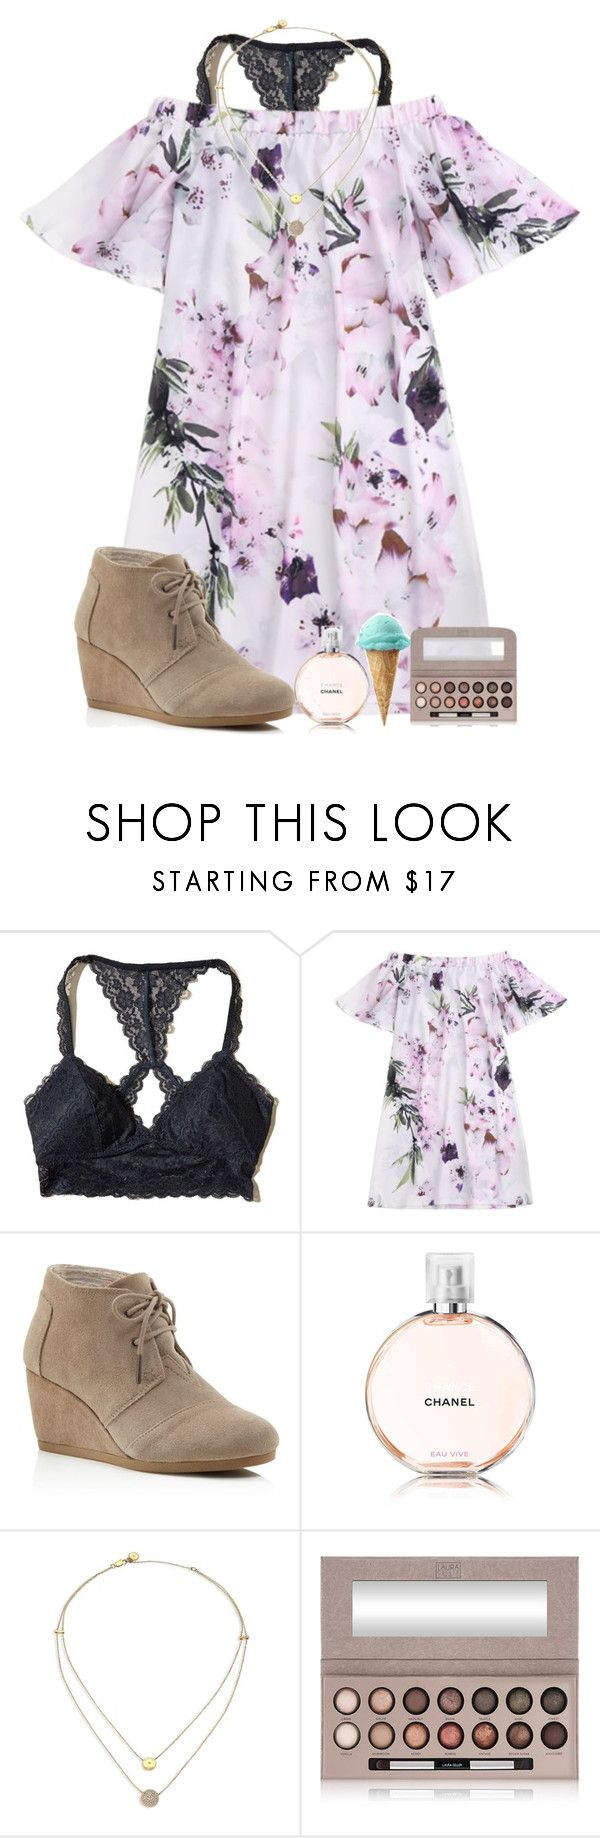 """Happy Easter!!✝️"" by alexislynea-804 on Polyvore featuring Hollister Co., TOMS, Chanel, Michael Kors and Laura Geller"